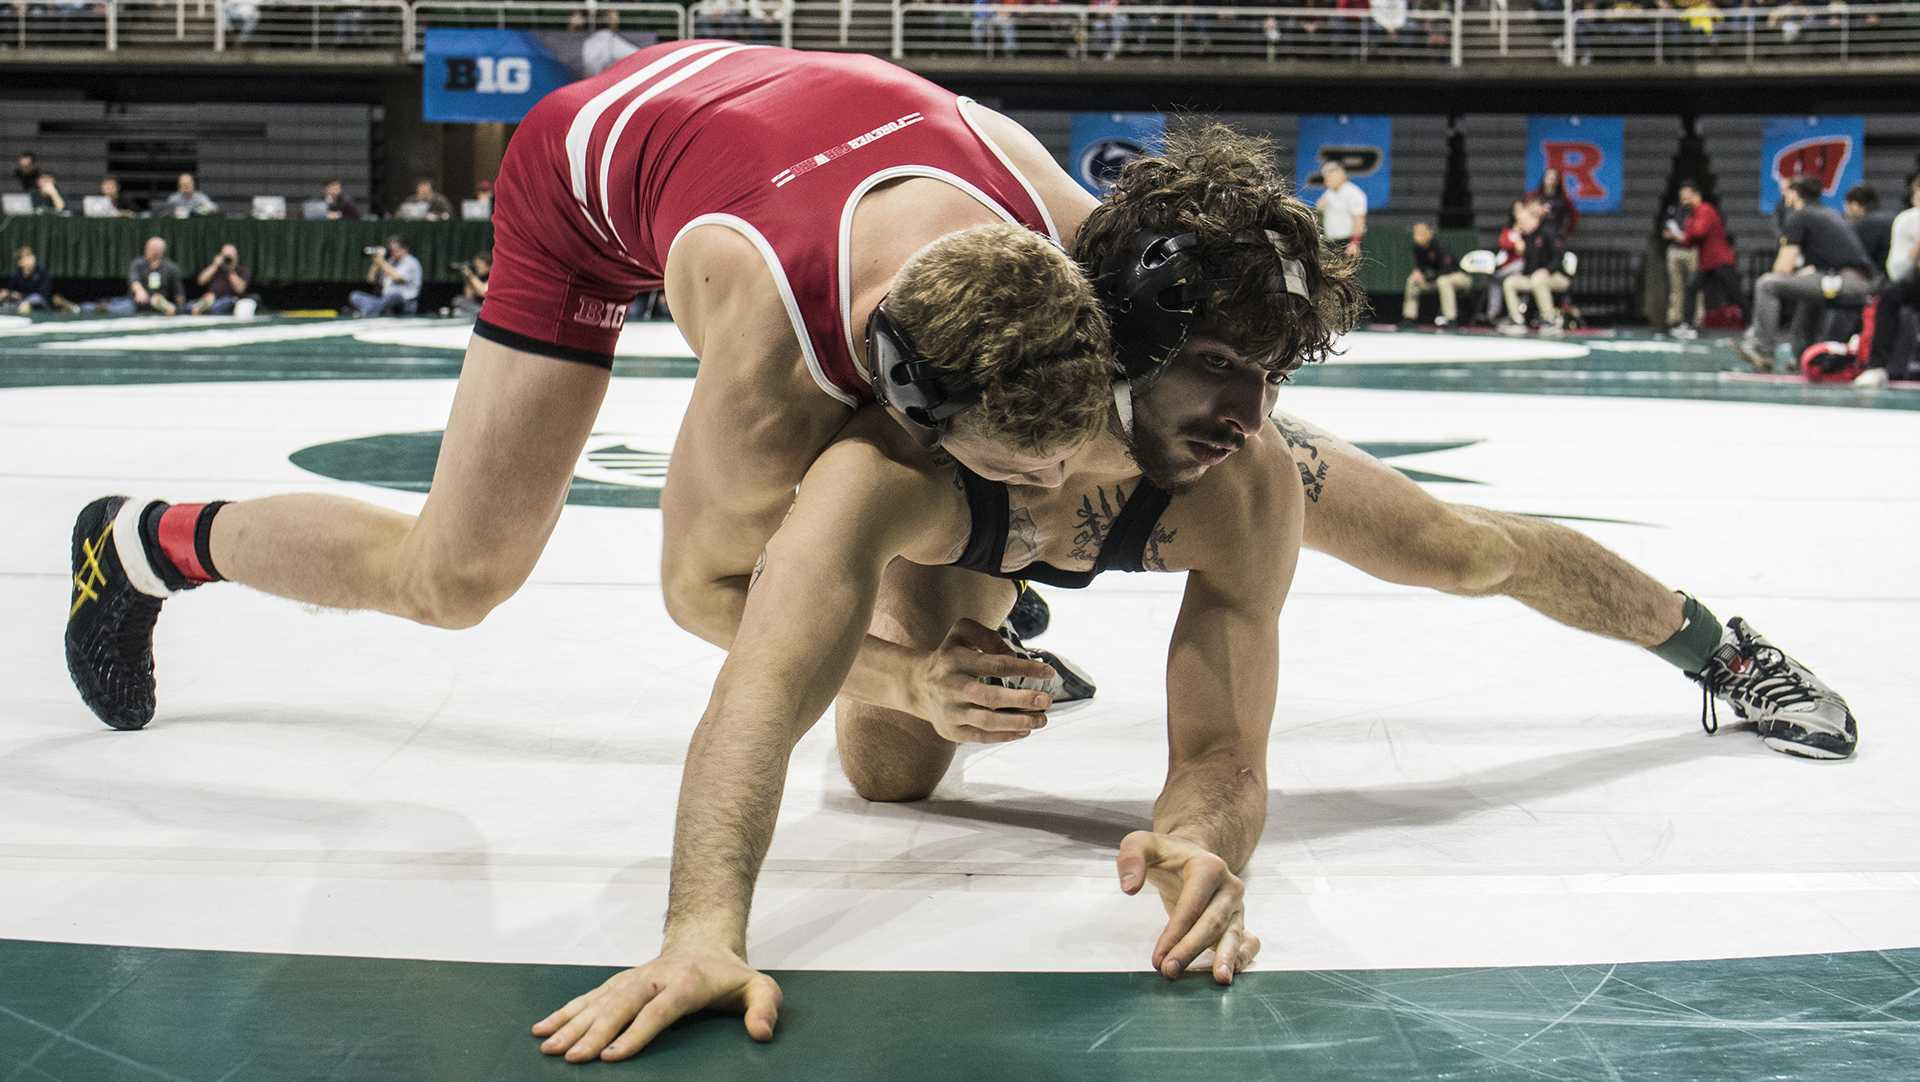 Wisconsin's 141-pound Eli Stickley, left, scores two on Iowa's Vince Turk during Big Ten Wrestling Championships Day 1 at the Breslin Student Events Center in East Lansing, MI on Saturday, Mar. 3, 2018. (Ben Allan Smith/The Daily Iowan)